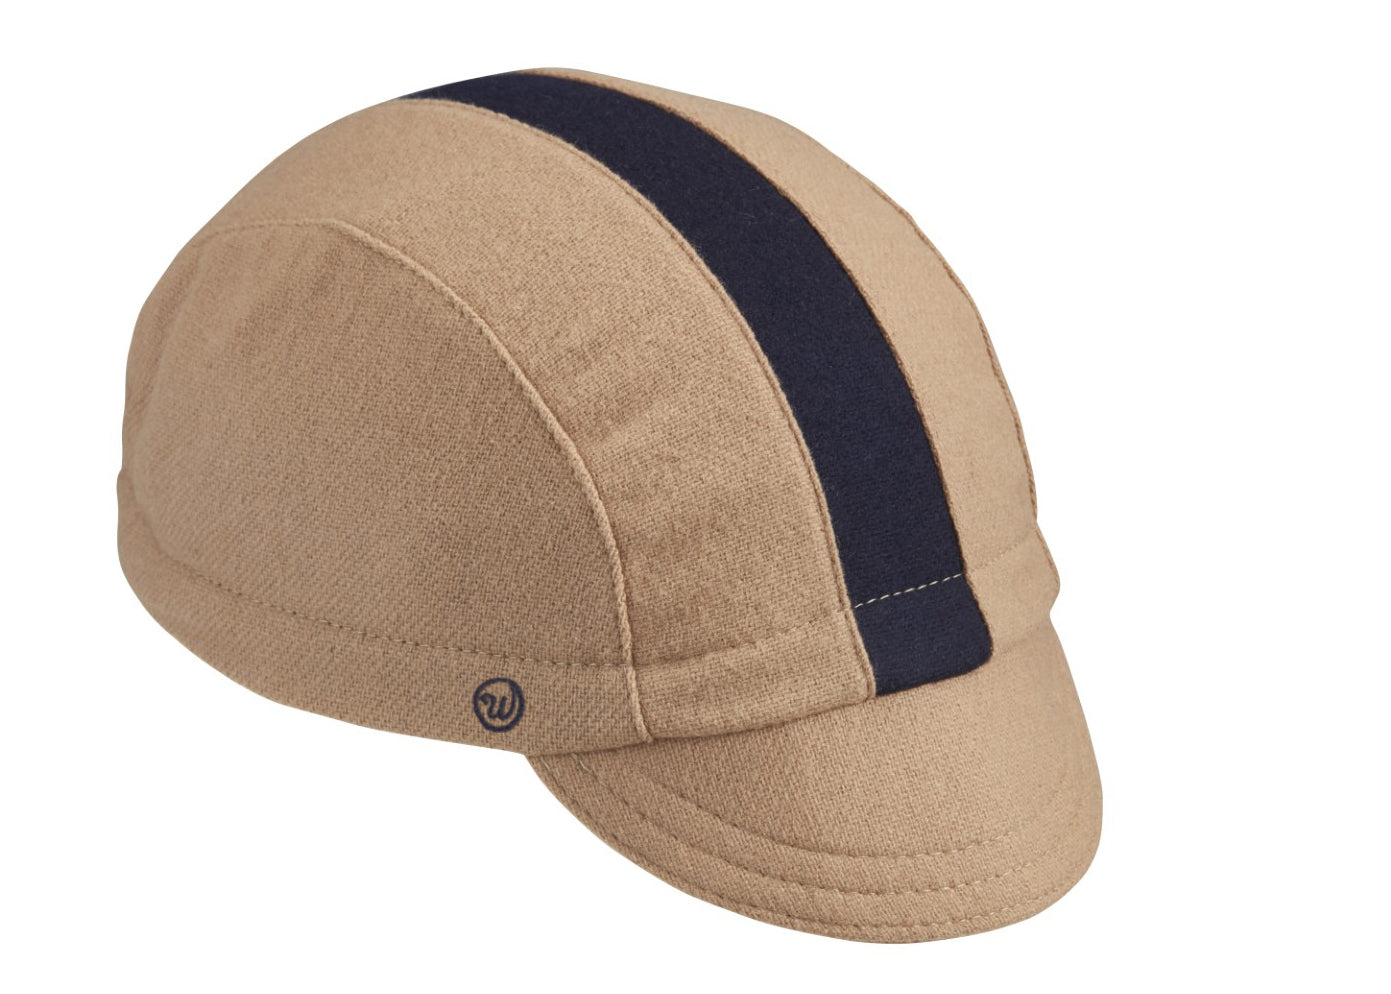 *NEW* Camel/Navy Wool 3-Panel